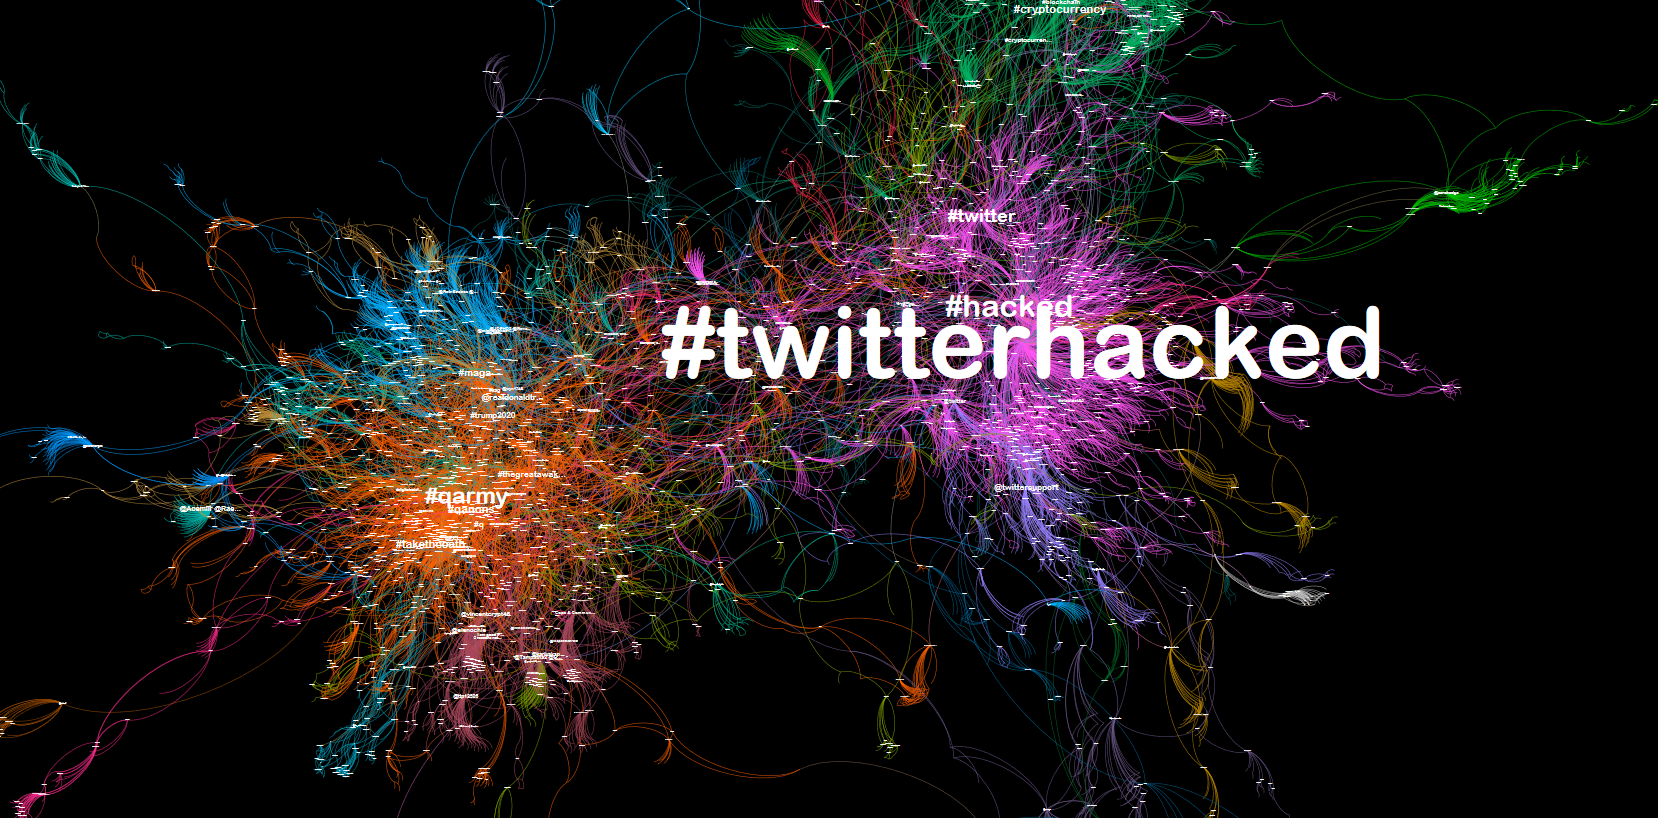 Theories in Flux: The Twitter Hack According to QAnon